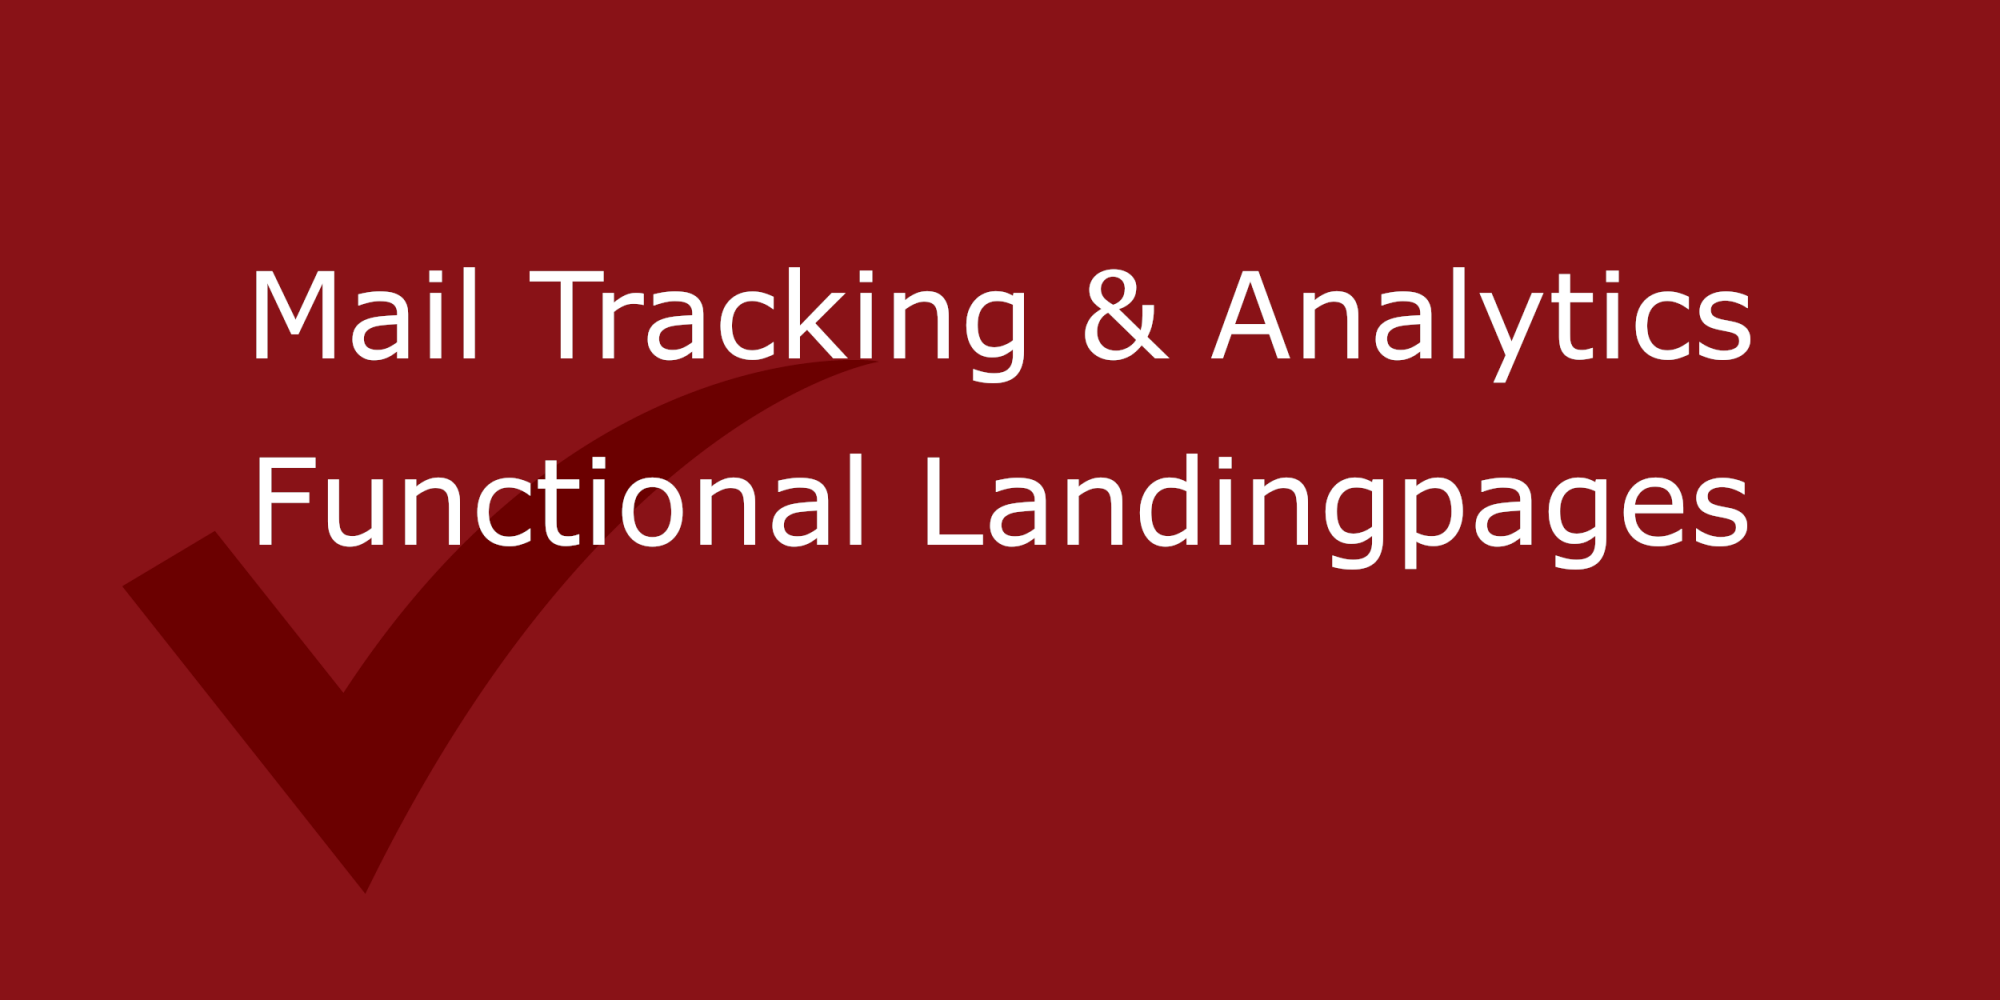 Mail Tracking & Analytics Functional Landingpages